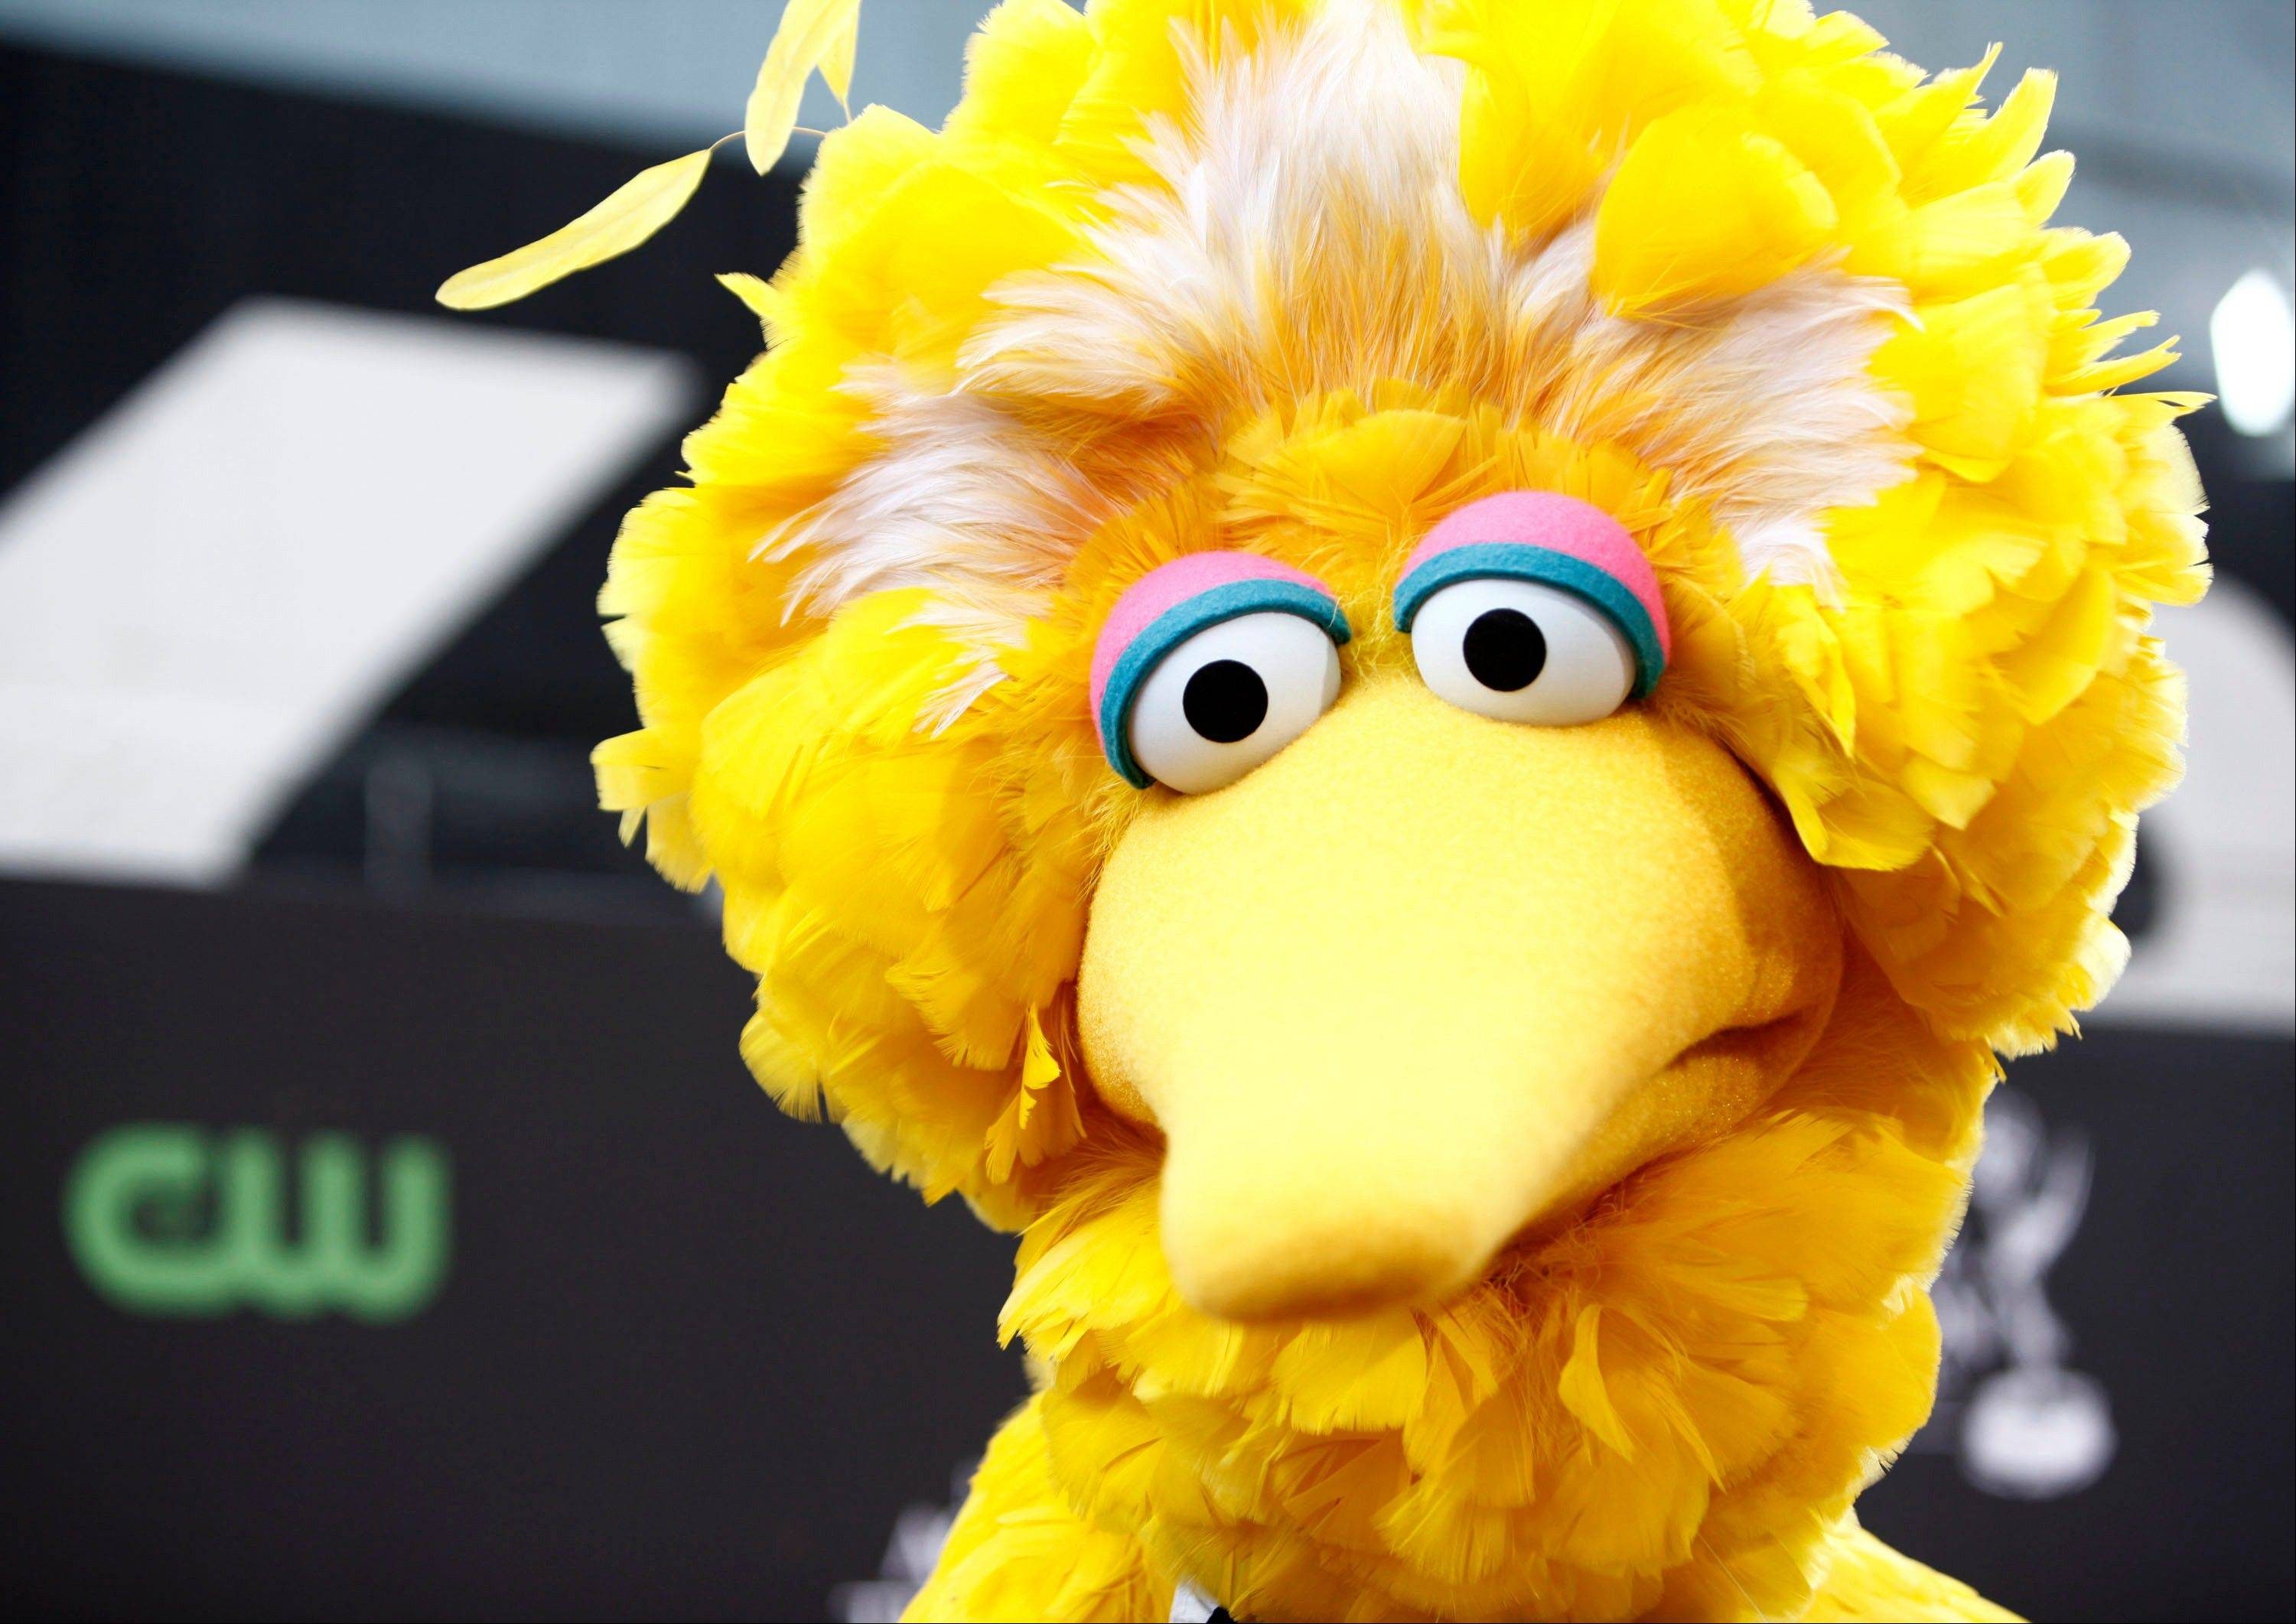 "Early in the debate, Mitt Romney said he would defund public broadcasting to bring down the deficit but added that he liked Big Bird. Social networks immediately responded, with participants posting spoof photos of Big Bird and other ""Sesame Street"" characters on Facebook and setting up parody Big Bird Twitter accounts."